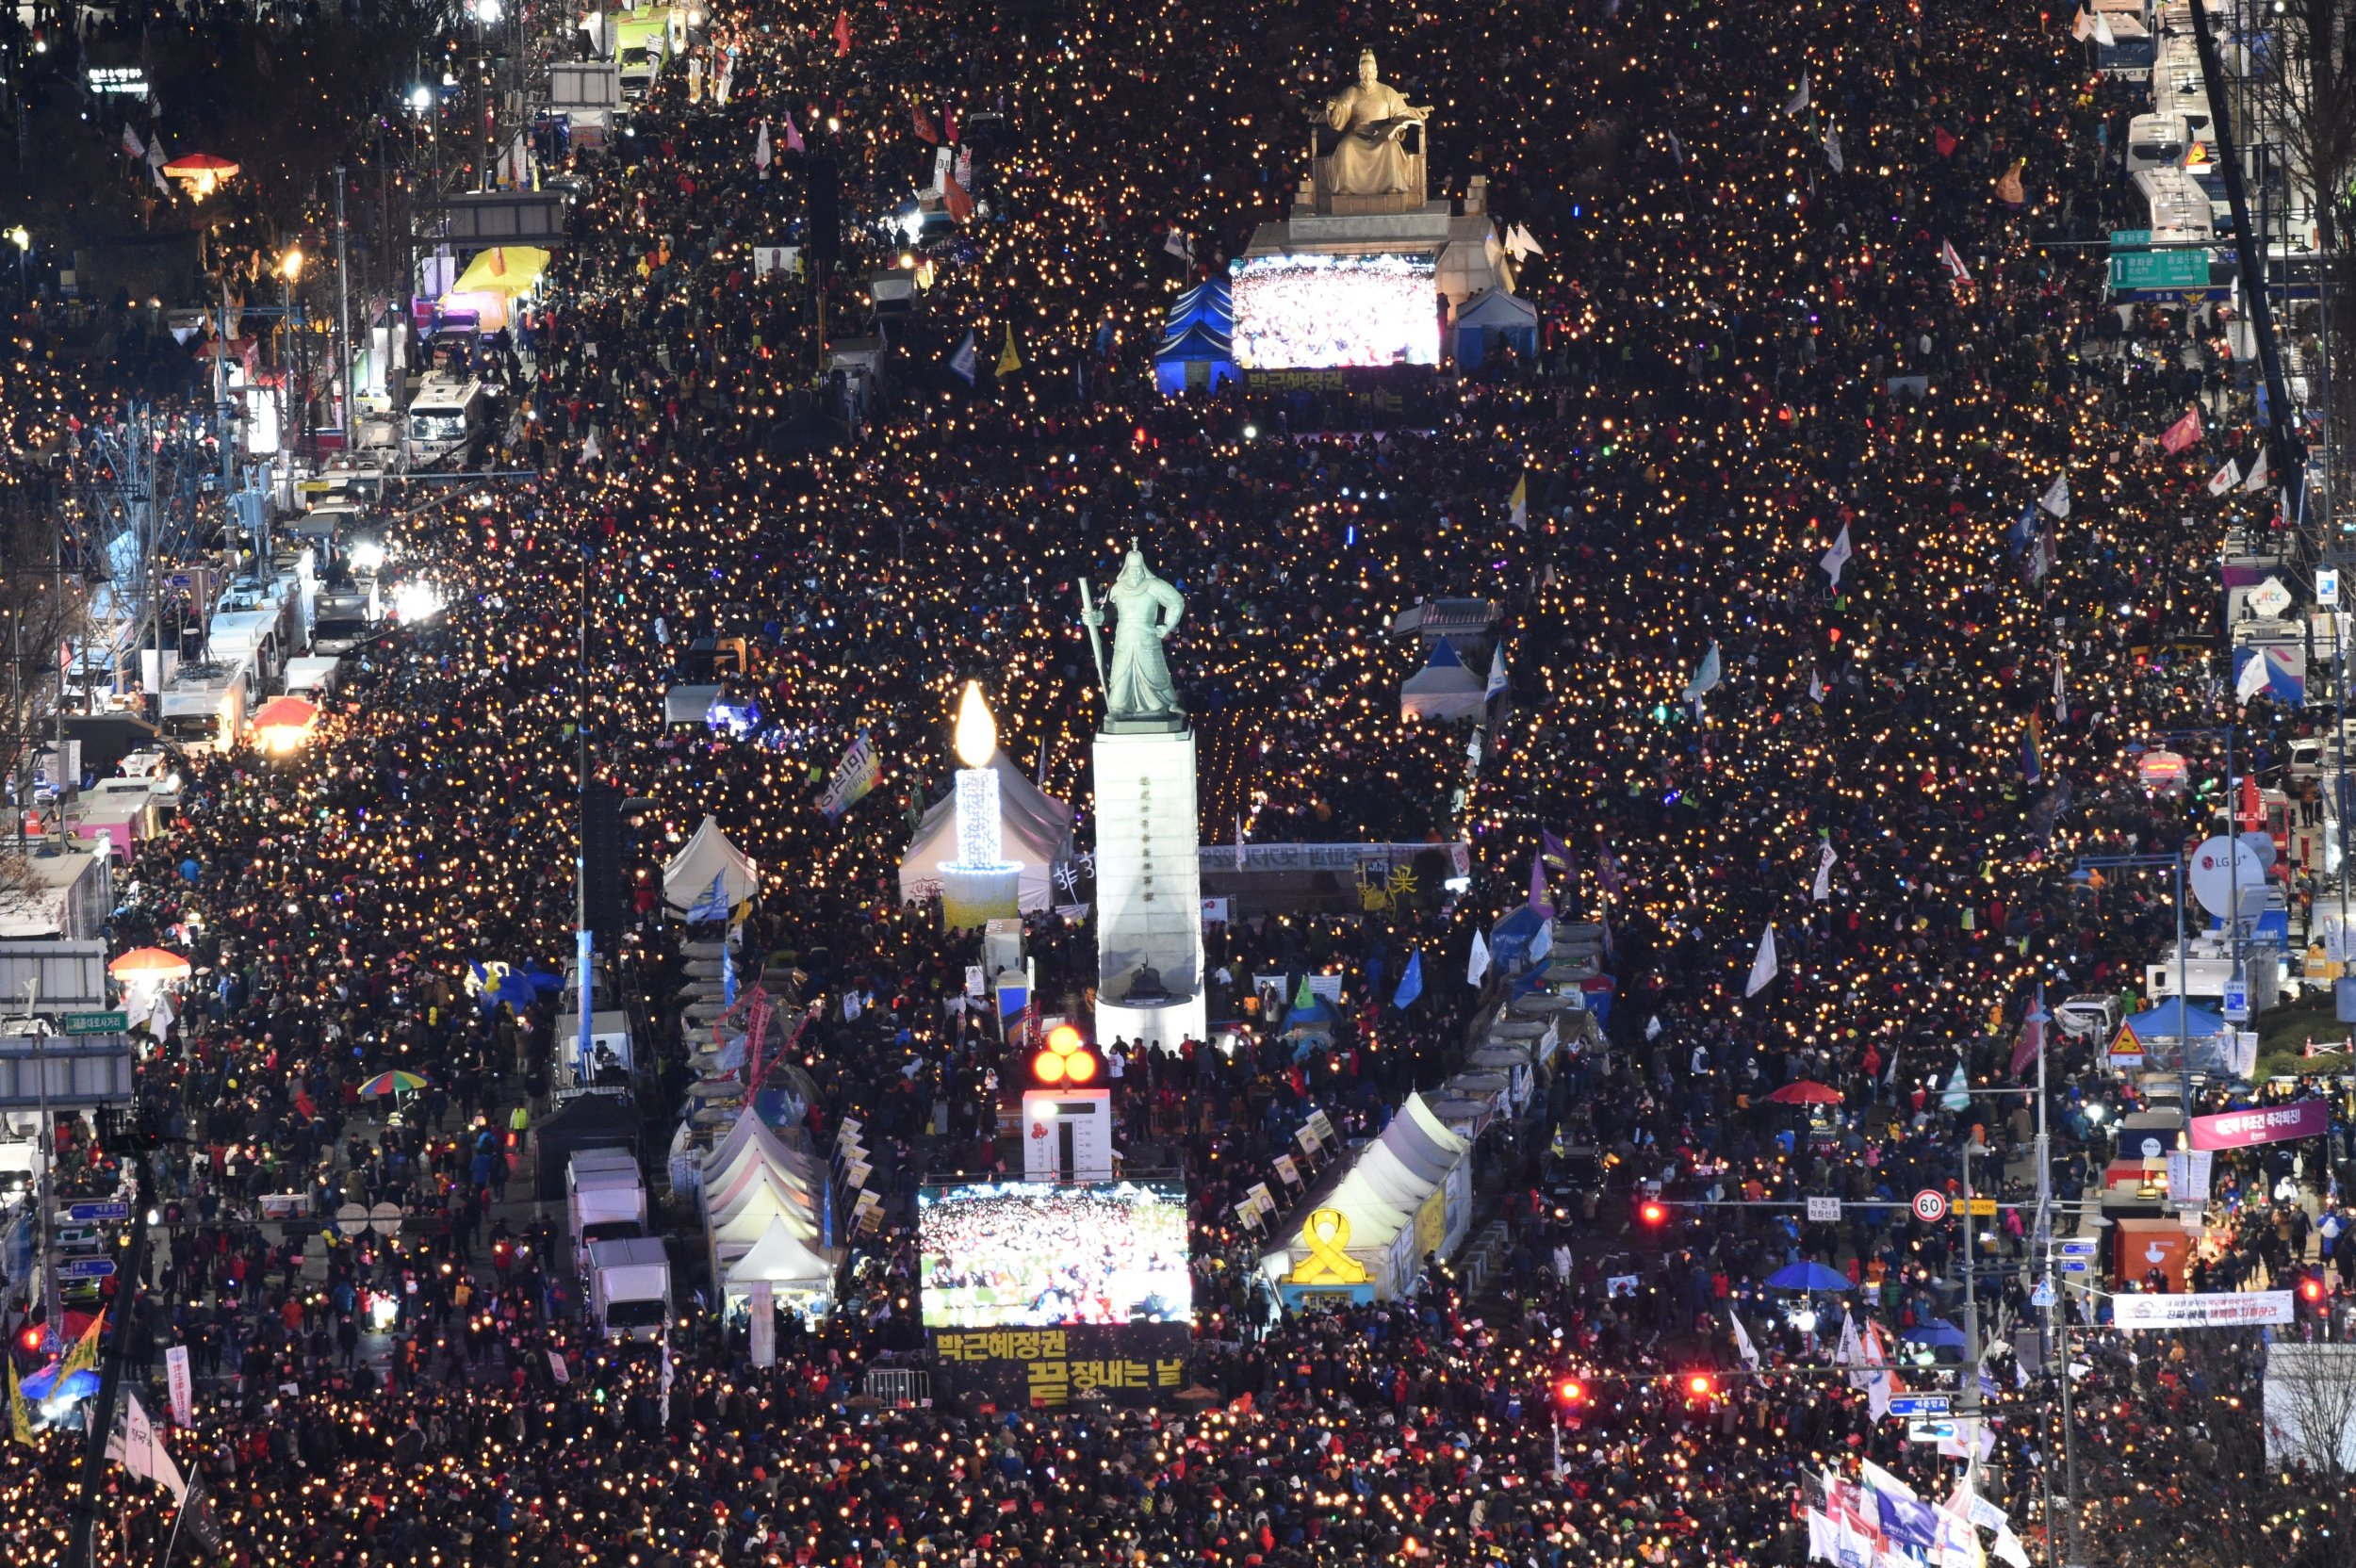 Protesters march against Park in Korea